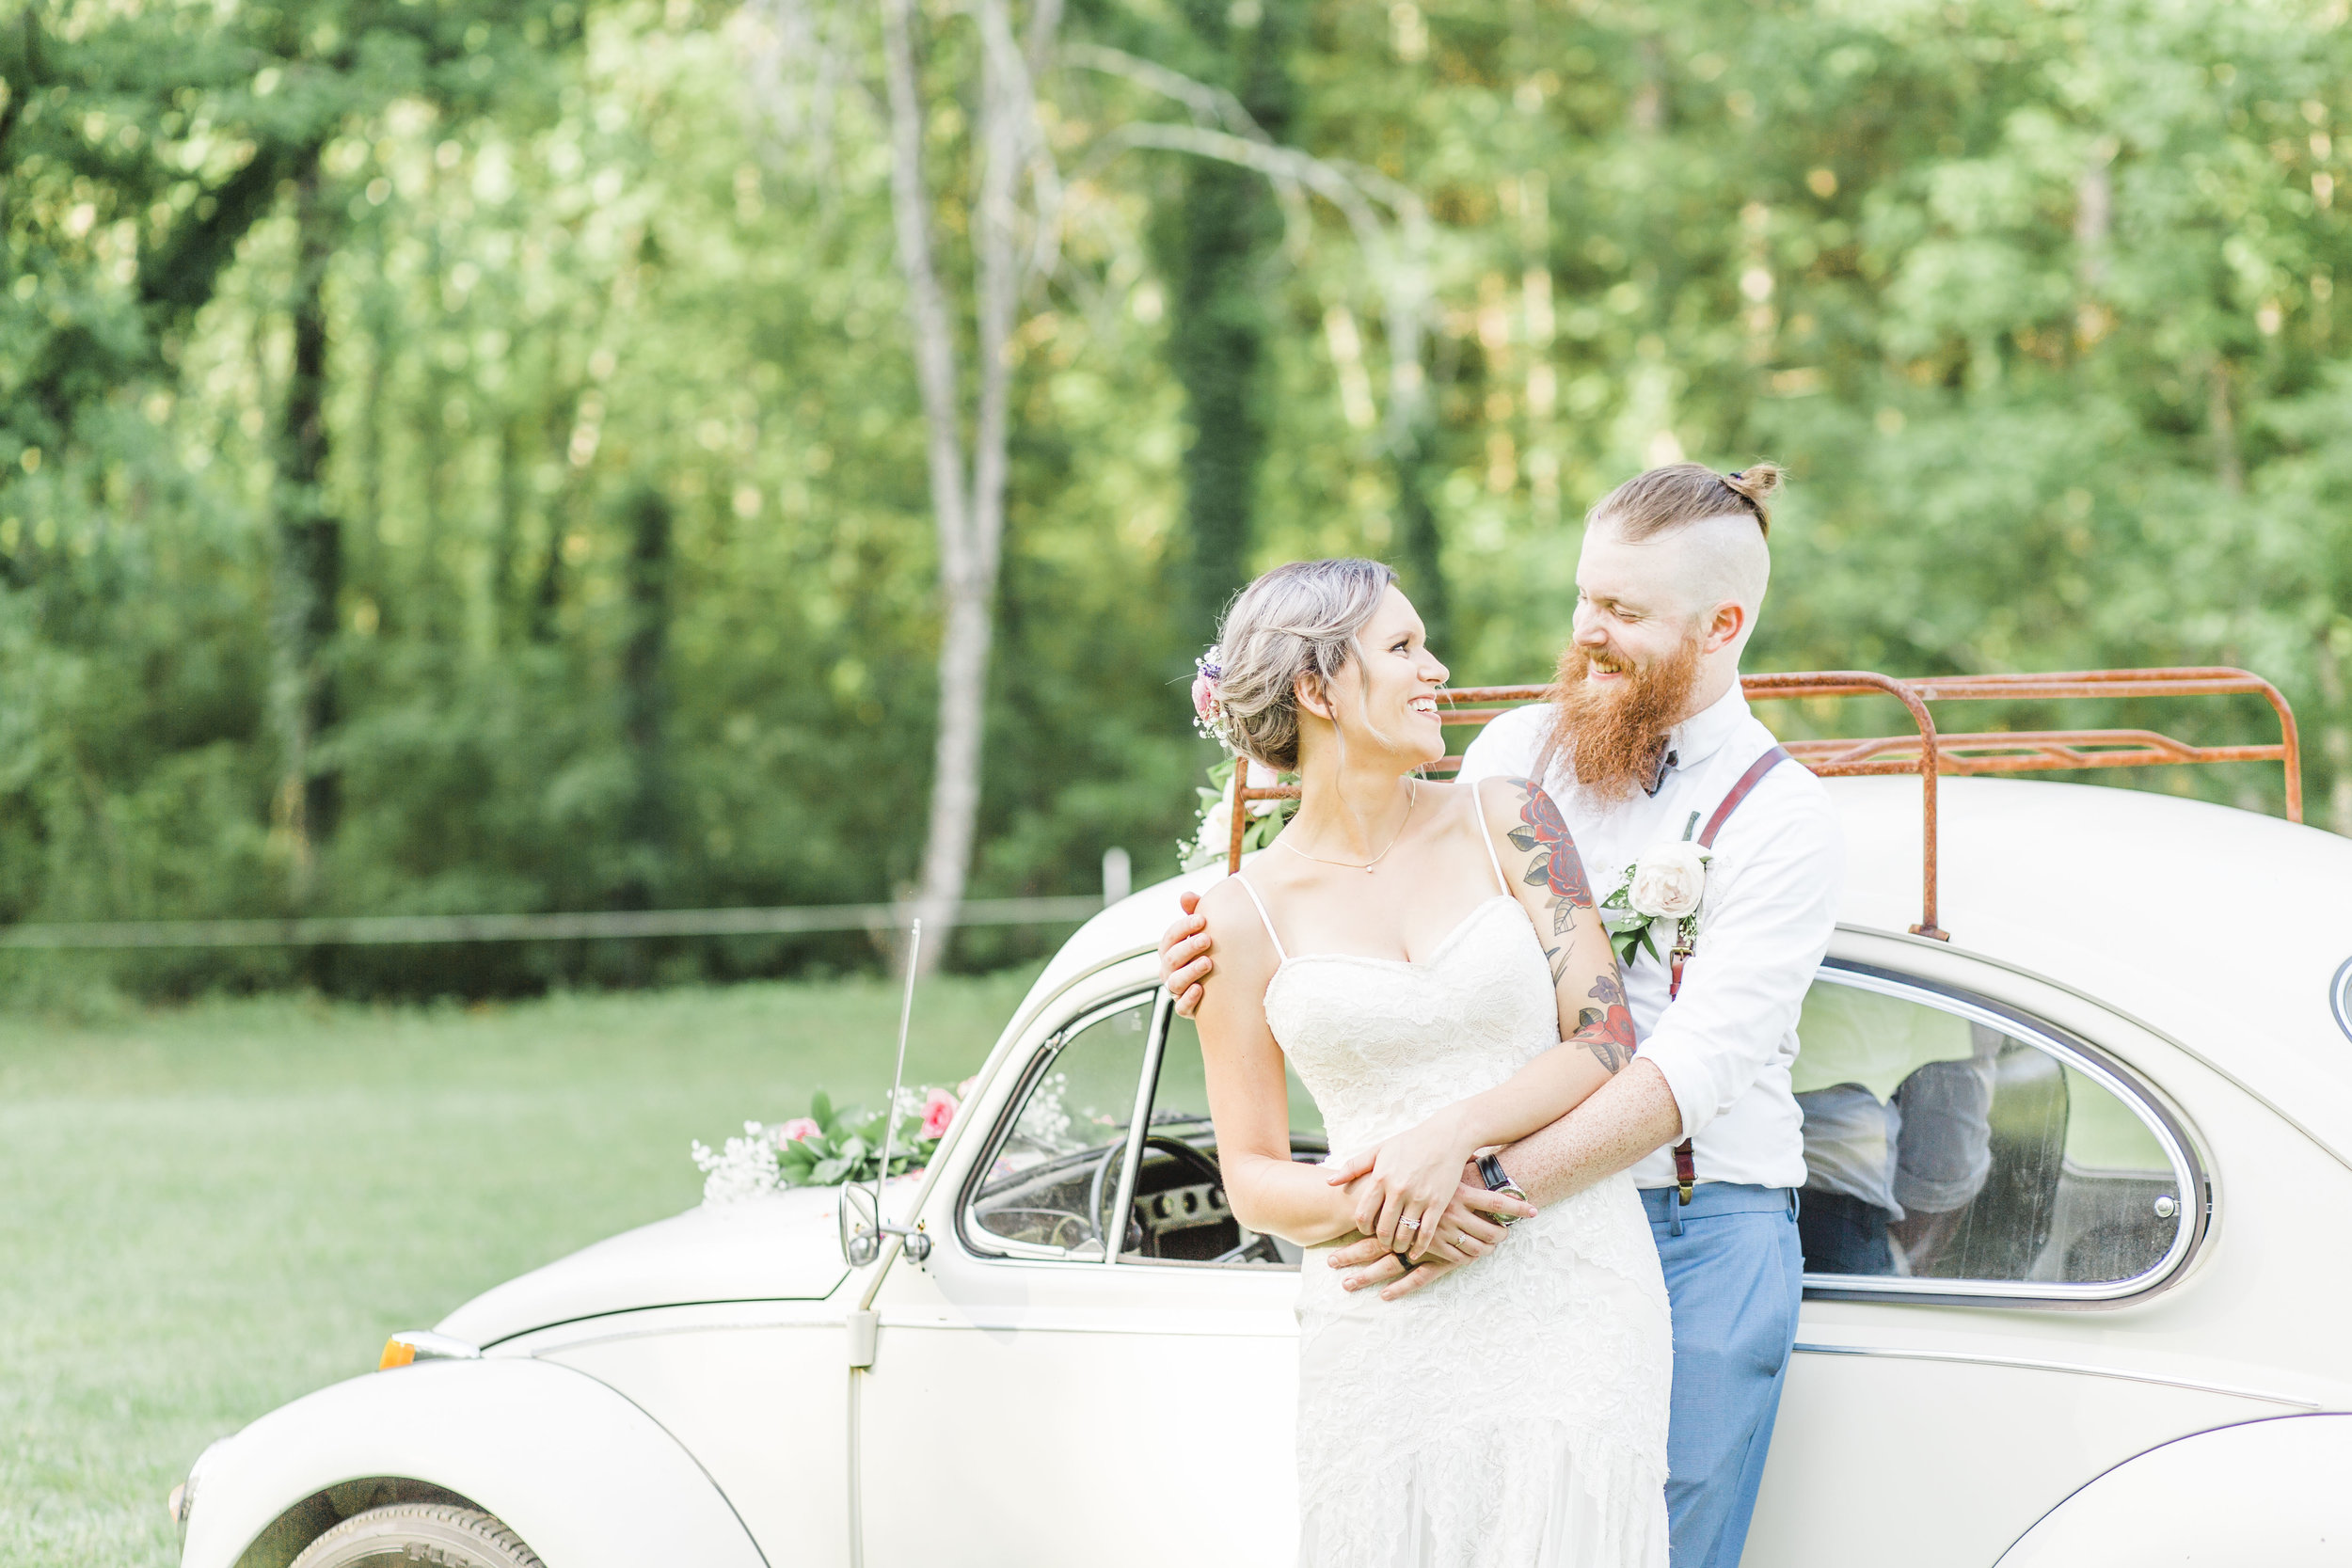 Backyard wedding volkswagen